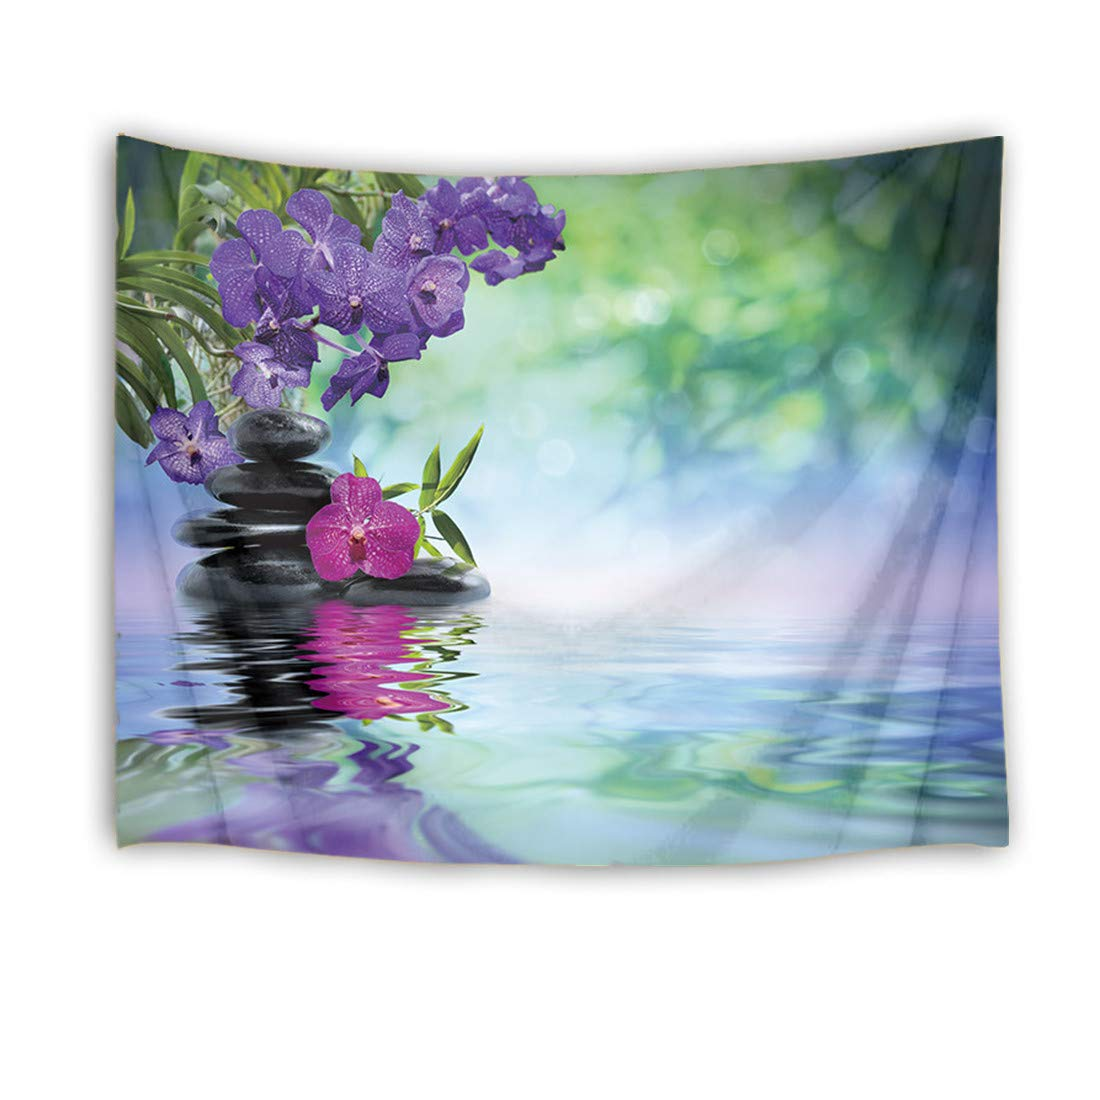 LB Zen Spa Tapestry Orchid Tapestry Wall Hanging Massage Stones Purple Flowers and Green Bamboo Forest in Water Wall Blanket for Bedroom,Living Room,Dorm Decor,60 W X 40 H inches